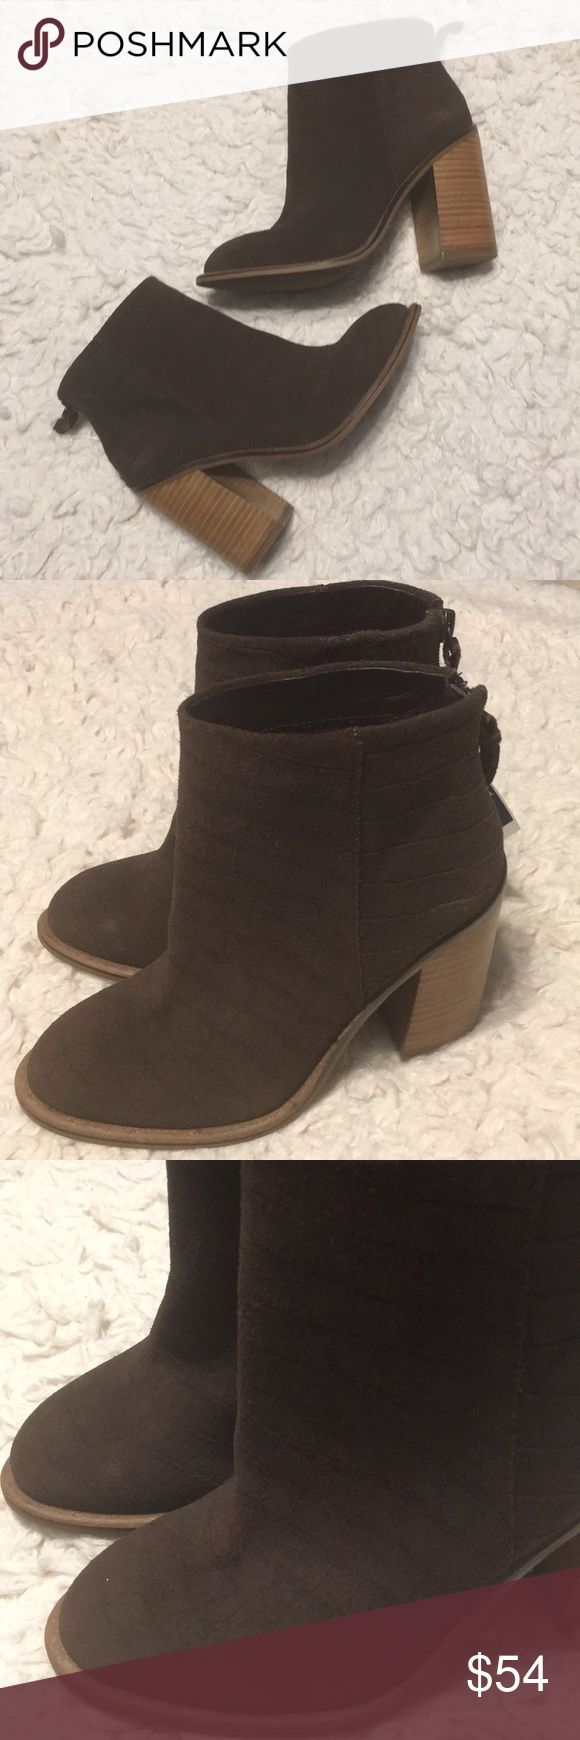 New Kelsi Dagger Brooklyn Brown Booties sz 6.5 New Kelsi Dagger brown leather booties size 6.5. The suede has a snakeskin like texture, zipper in back. Top quality shoes! Kelsi Dagger Shoes Ankle Boots & Booties